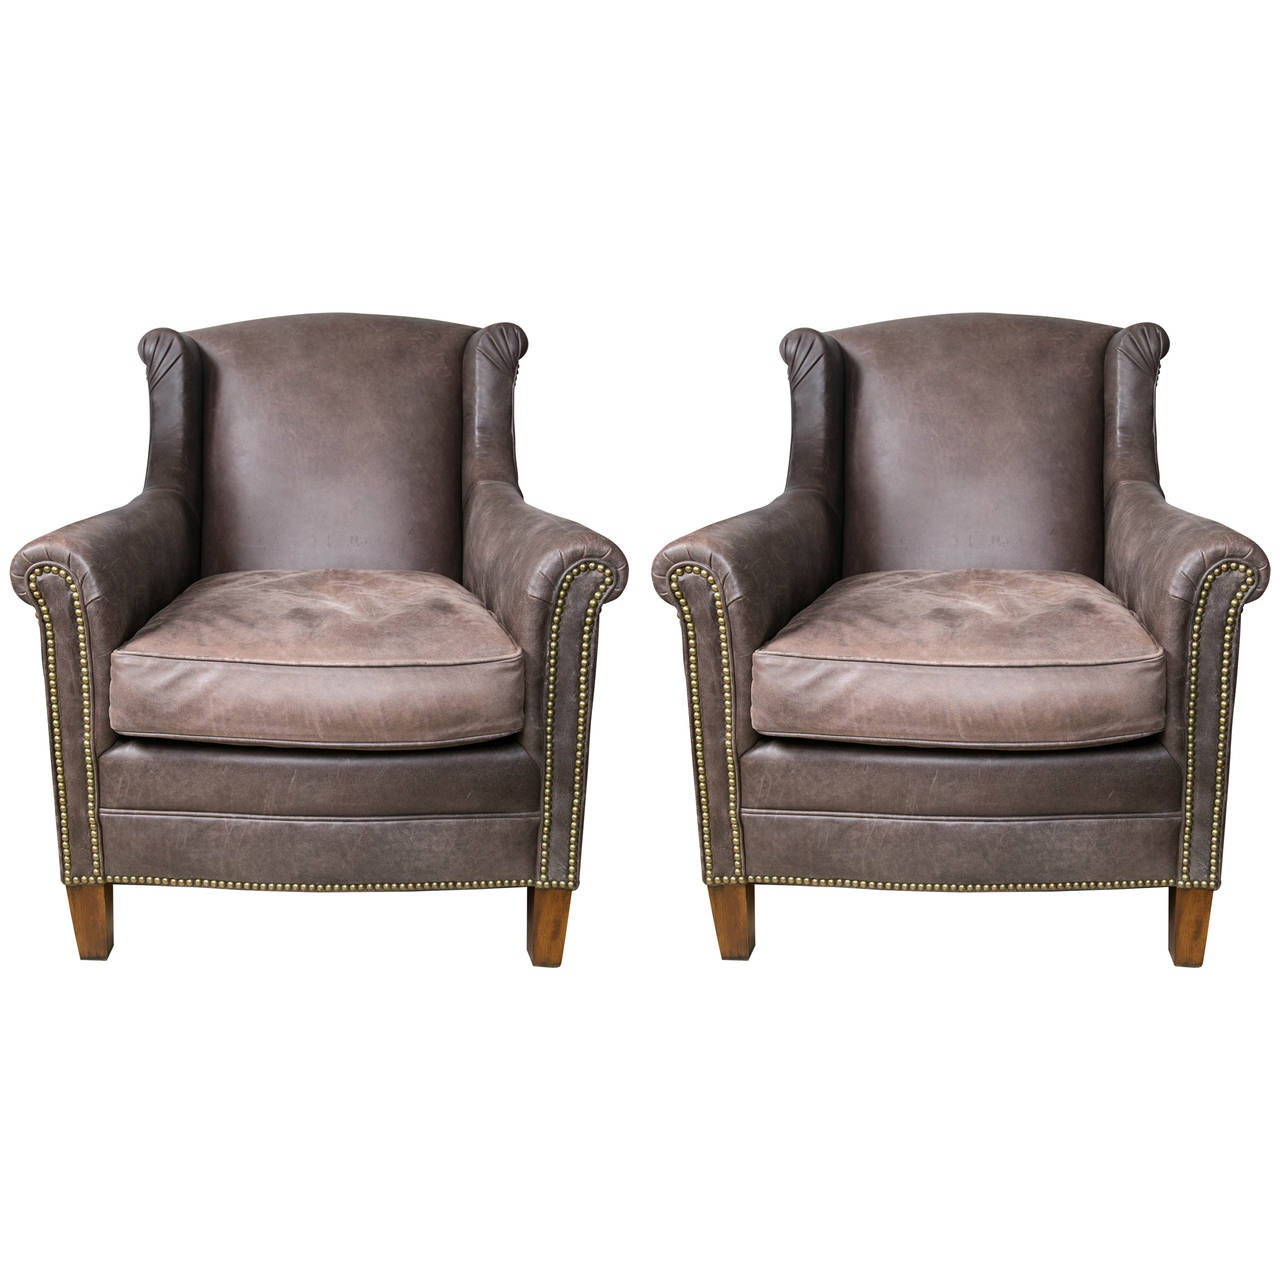 ralph lauren chair shiatsu massager pair of leather club chairs at 1stdibs